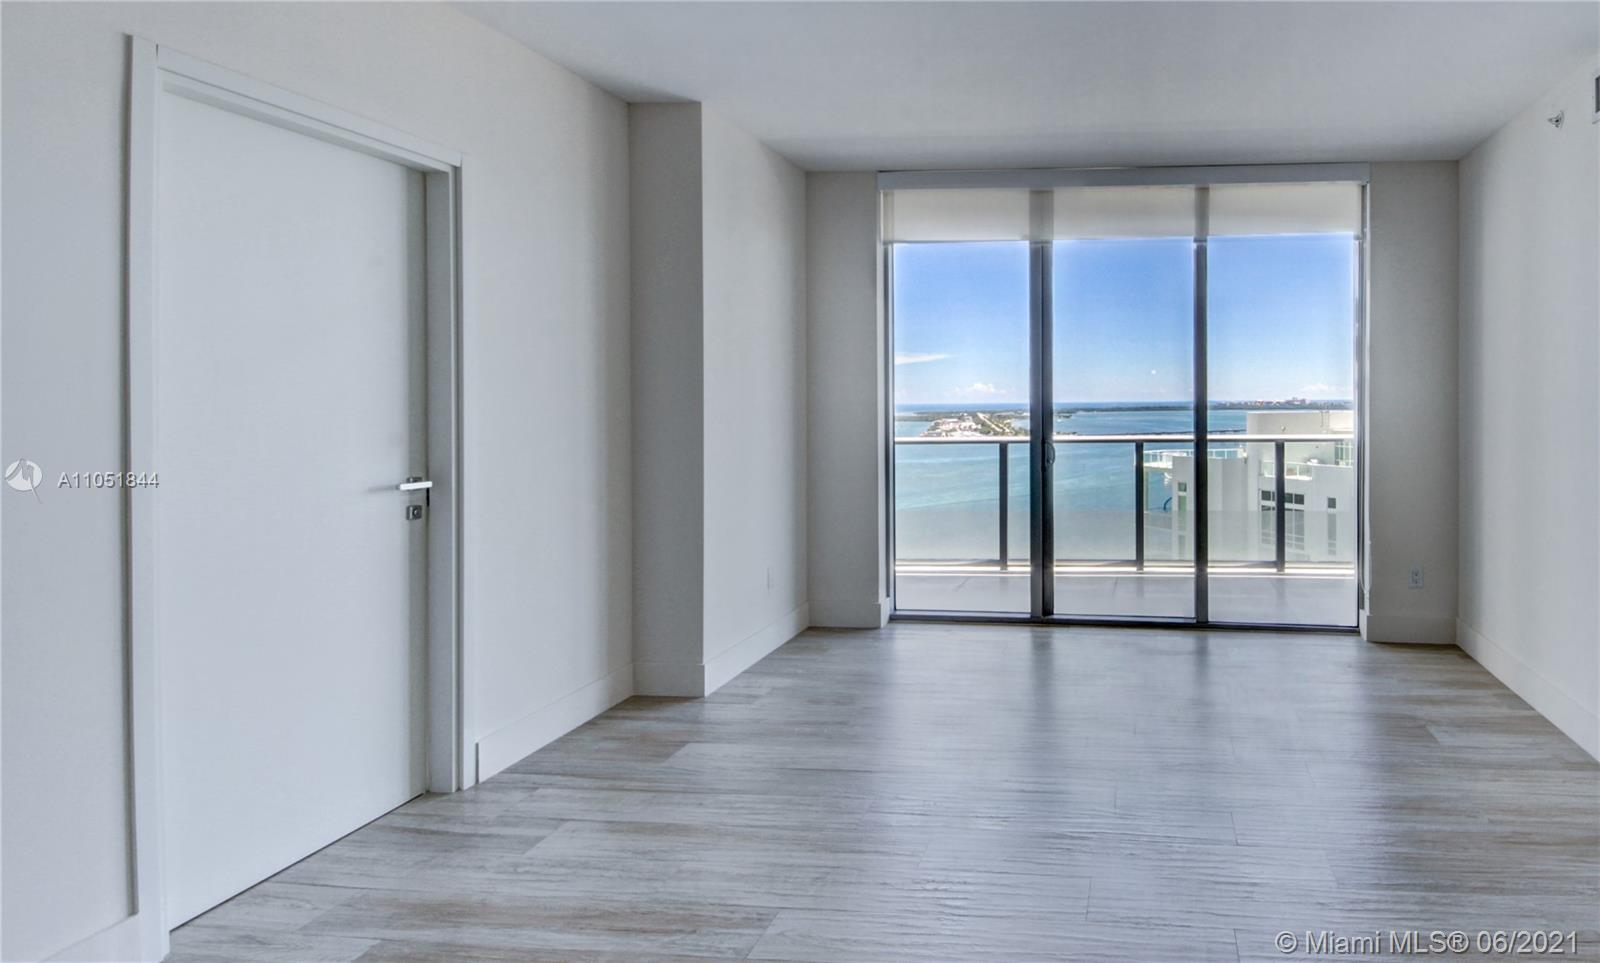 Amazing Direct Bay Views! This beautiful 2/2 + Den Unit features ceramic flooring, expansive balcony, Italian cabinetry, stainless steel appliances and beautiful bay views.  This full service building includes a private lounge, rooftop pool, lap pool, sauna, steam room, spa, fitness center, 24 reception, valet and more.